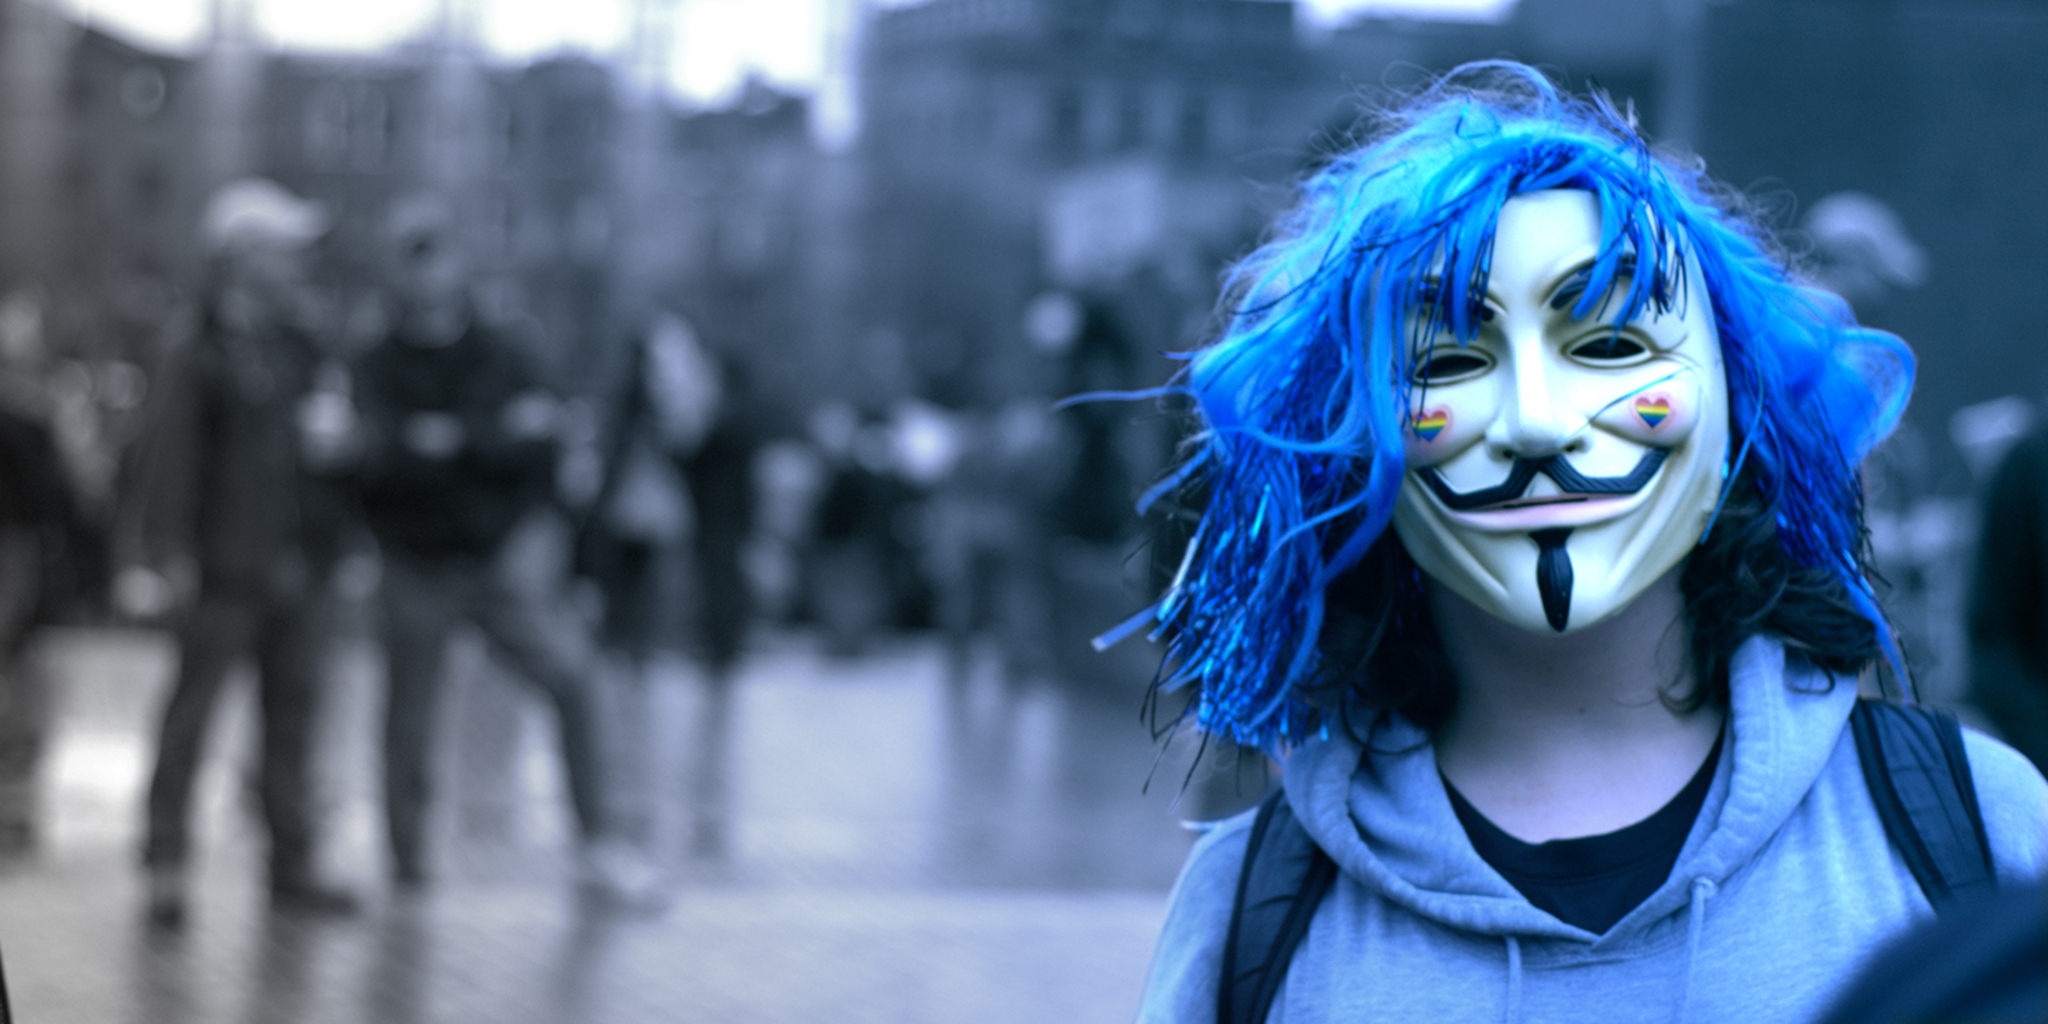 image of someone wearing an anonymous mask